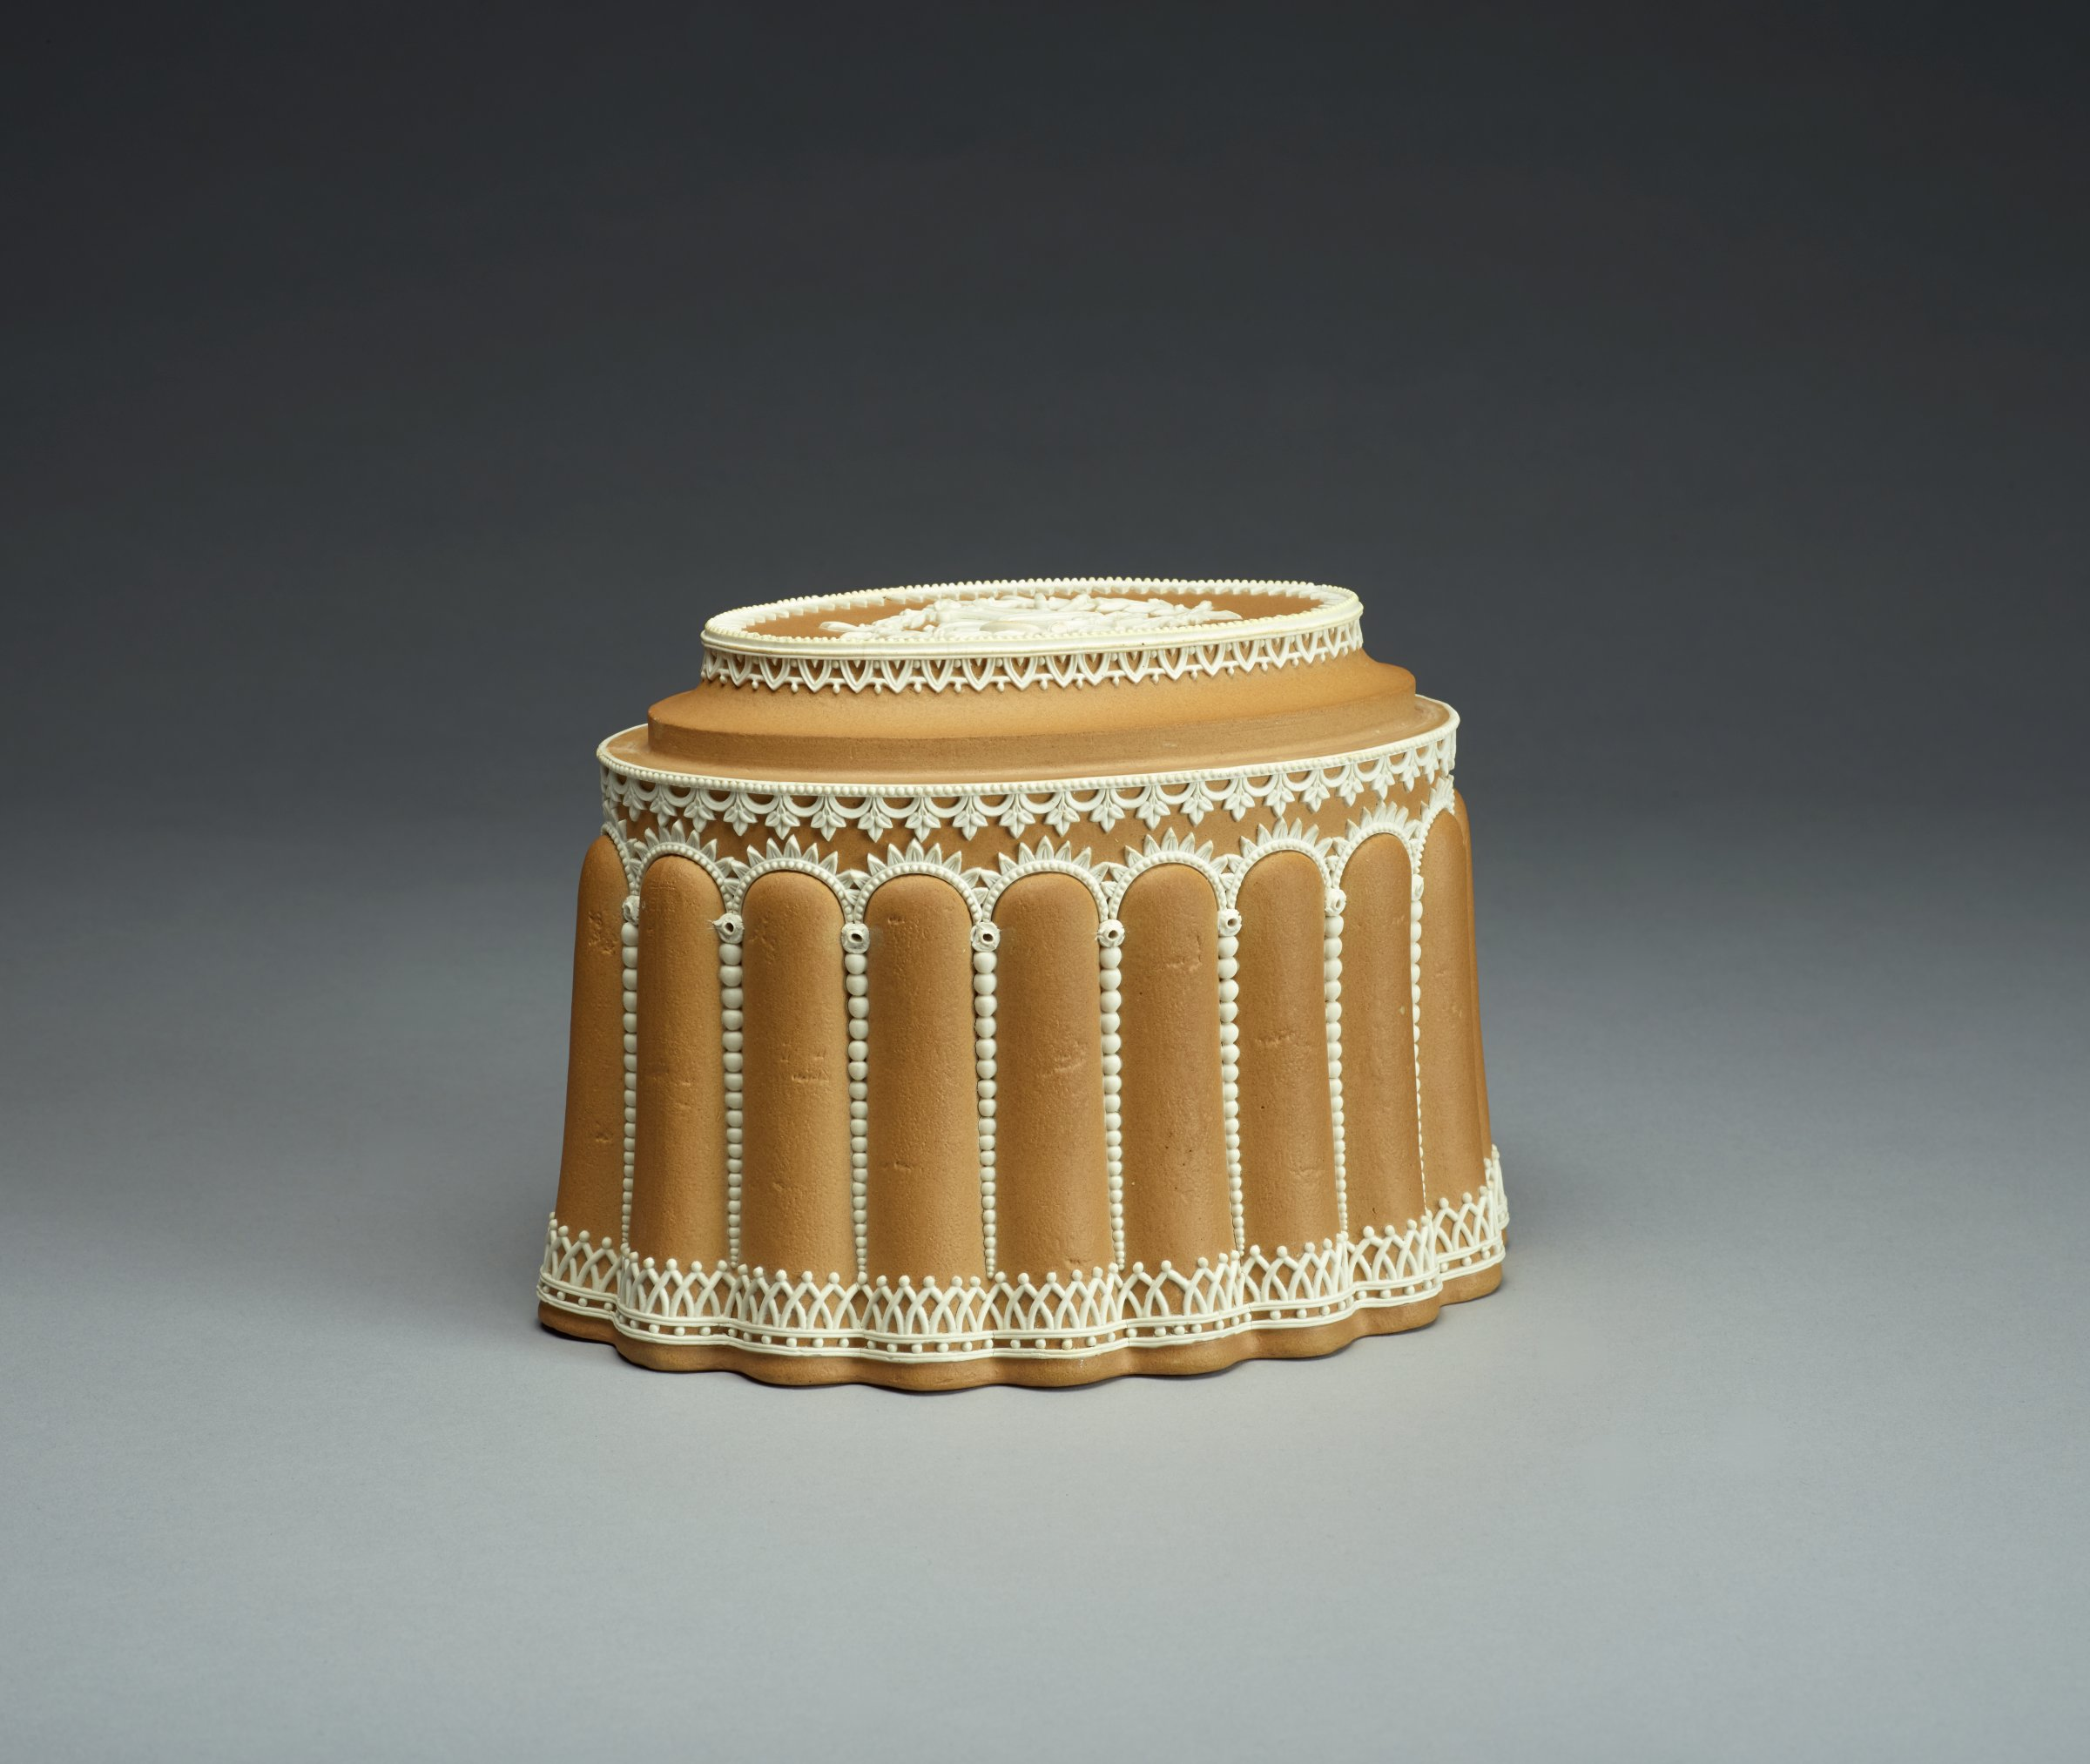 Caneware conceit (shape 419 in Shape Book) in the form of an oval, tiered cake with sides made of lady fingers and white stoneware applied relief that simulates icing in a design of beading within arched and interlaced borders, on the top an intertwined laurel wreath with musical trophies inside, with a solid flat base with a single large firing hole.